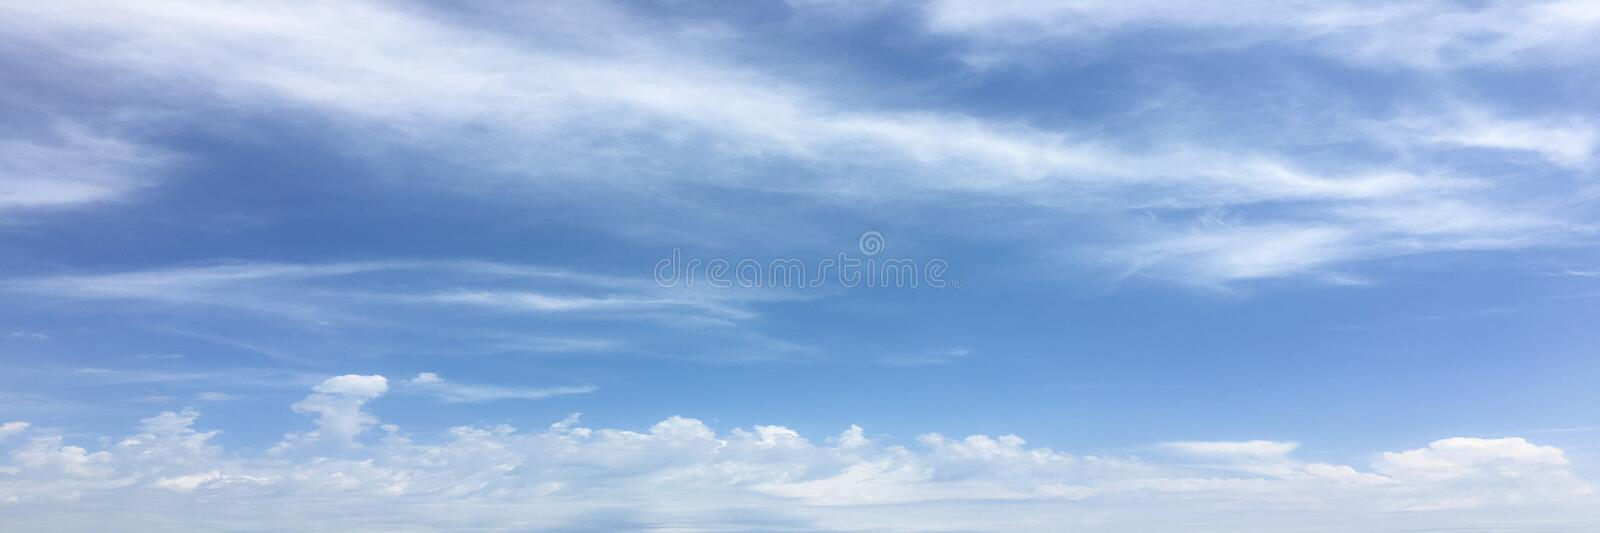 Beautiful clouds against a blue sky background. Cloud sky. Blue sky with clouds weather, nature cloud. White clouds, blue sky and royalty free stock photos